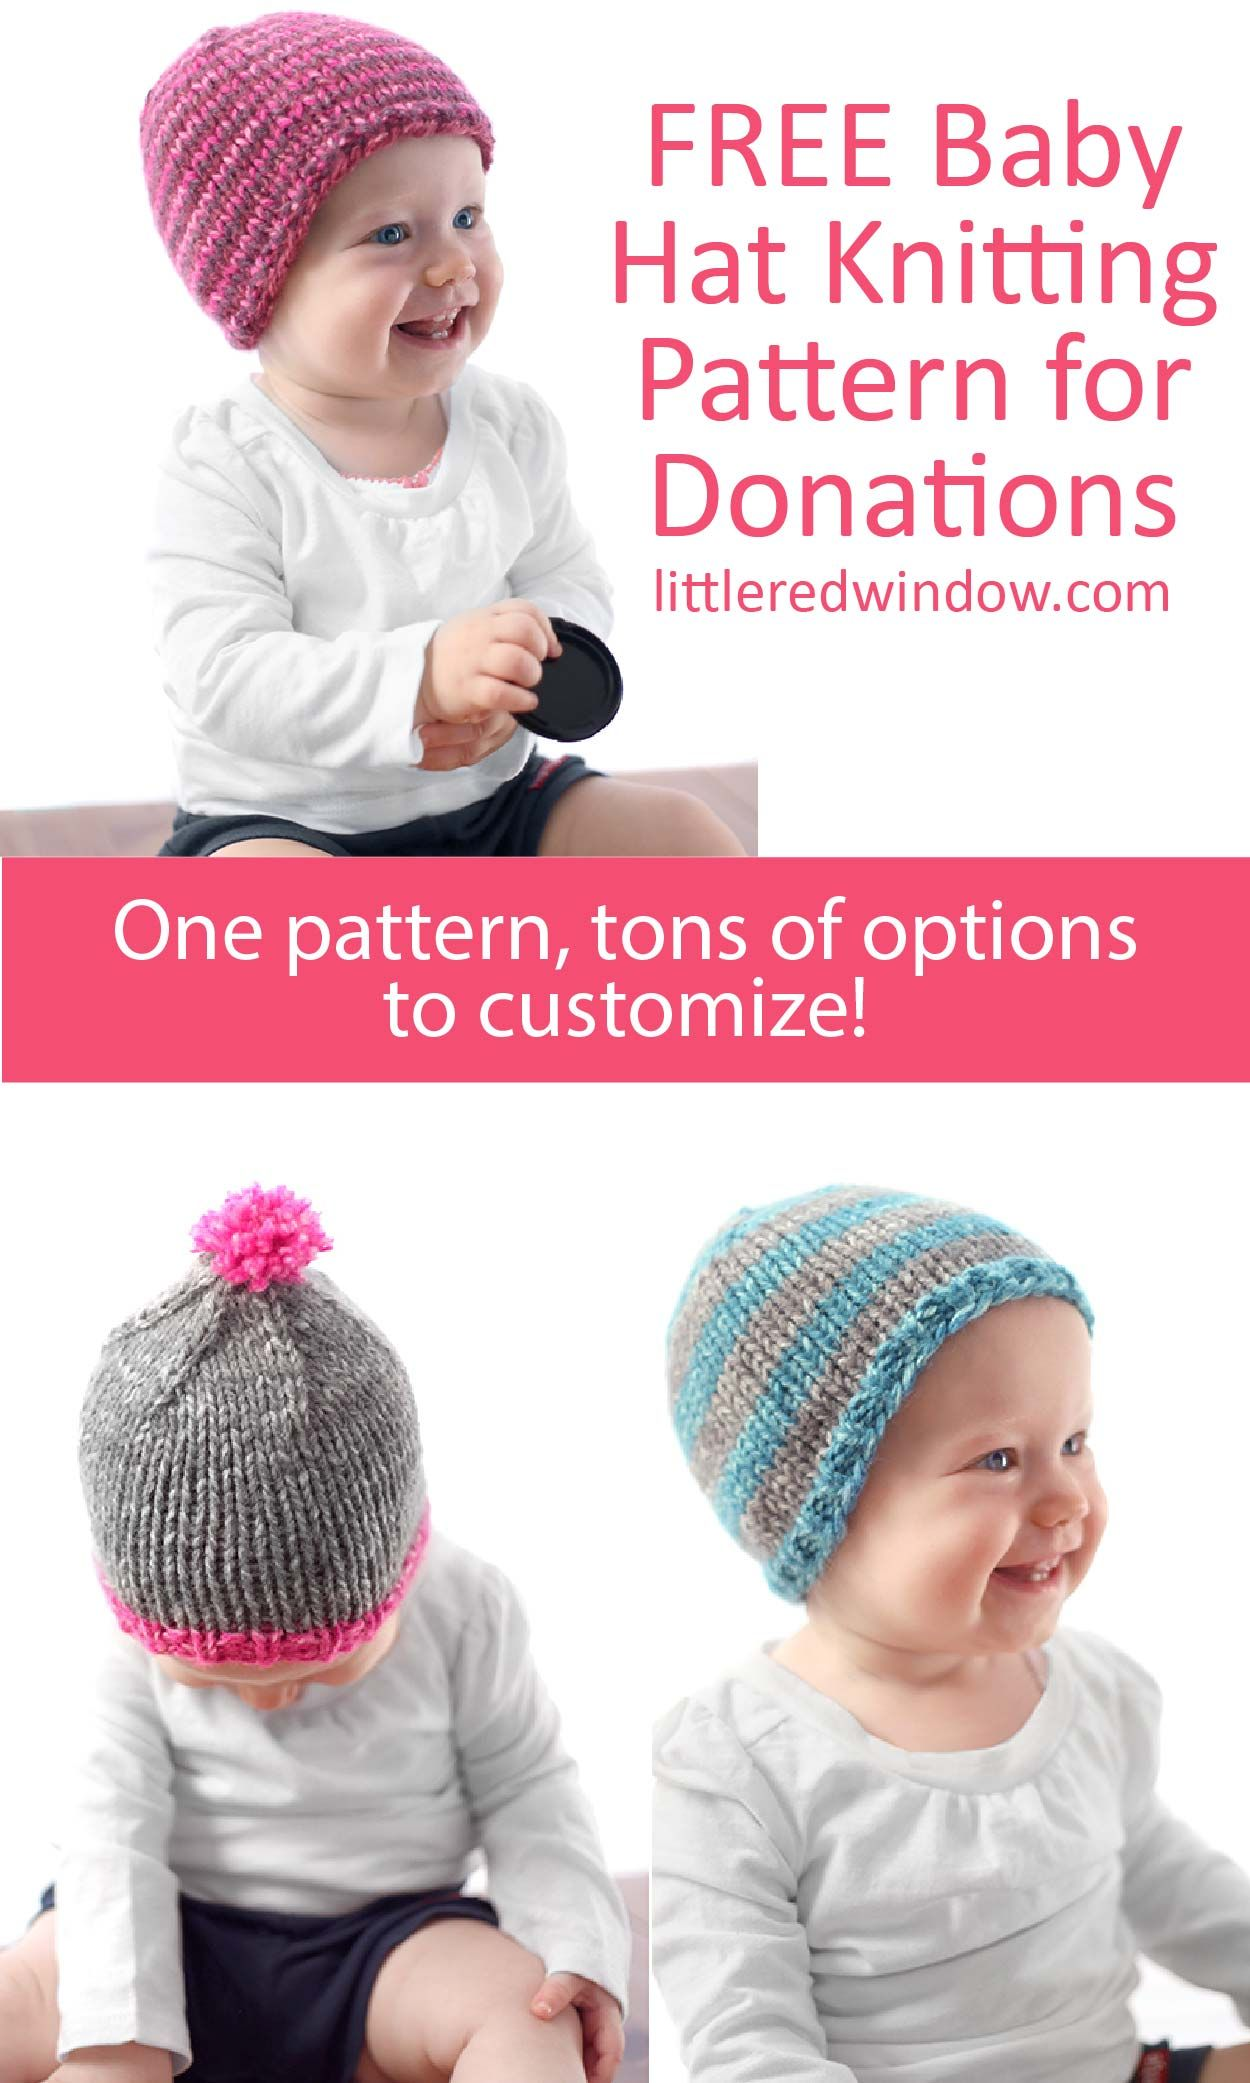 6d56ec46274 The Do-Gooder Free Baby Hat knitting pattern has a free pdf download